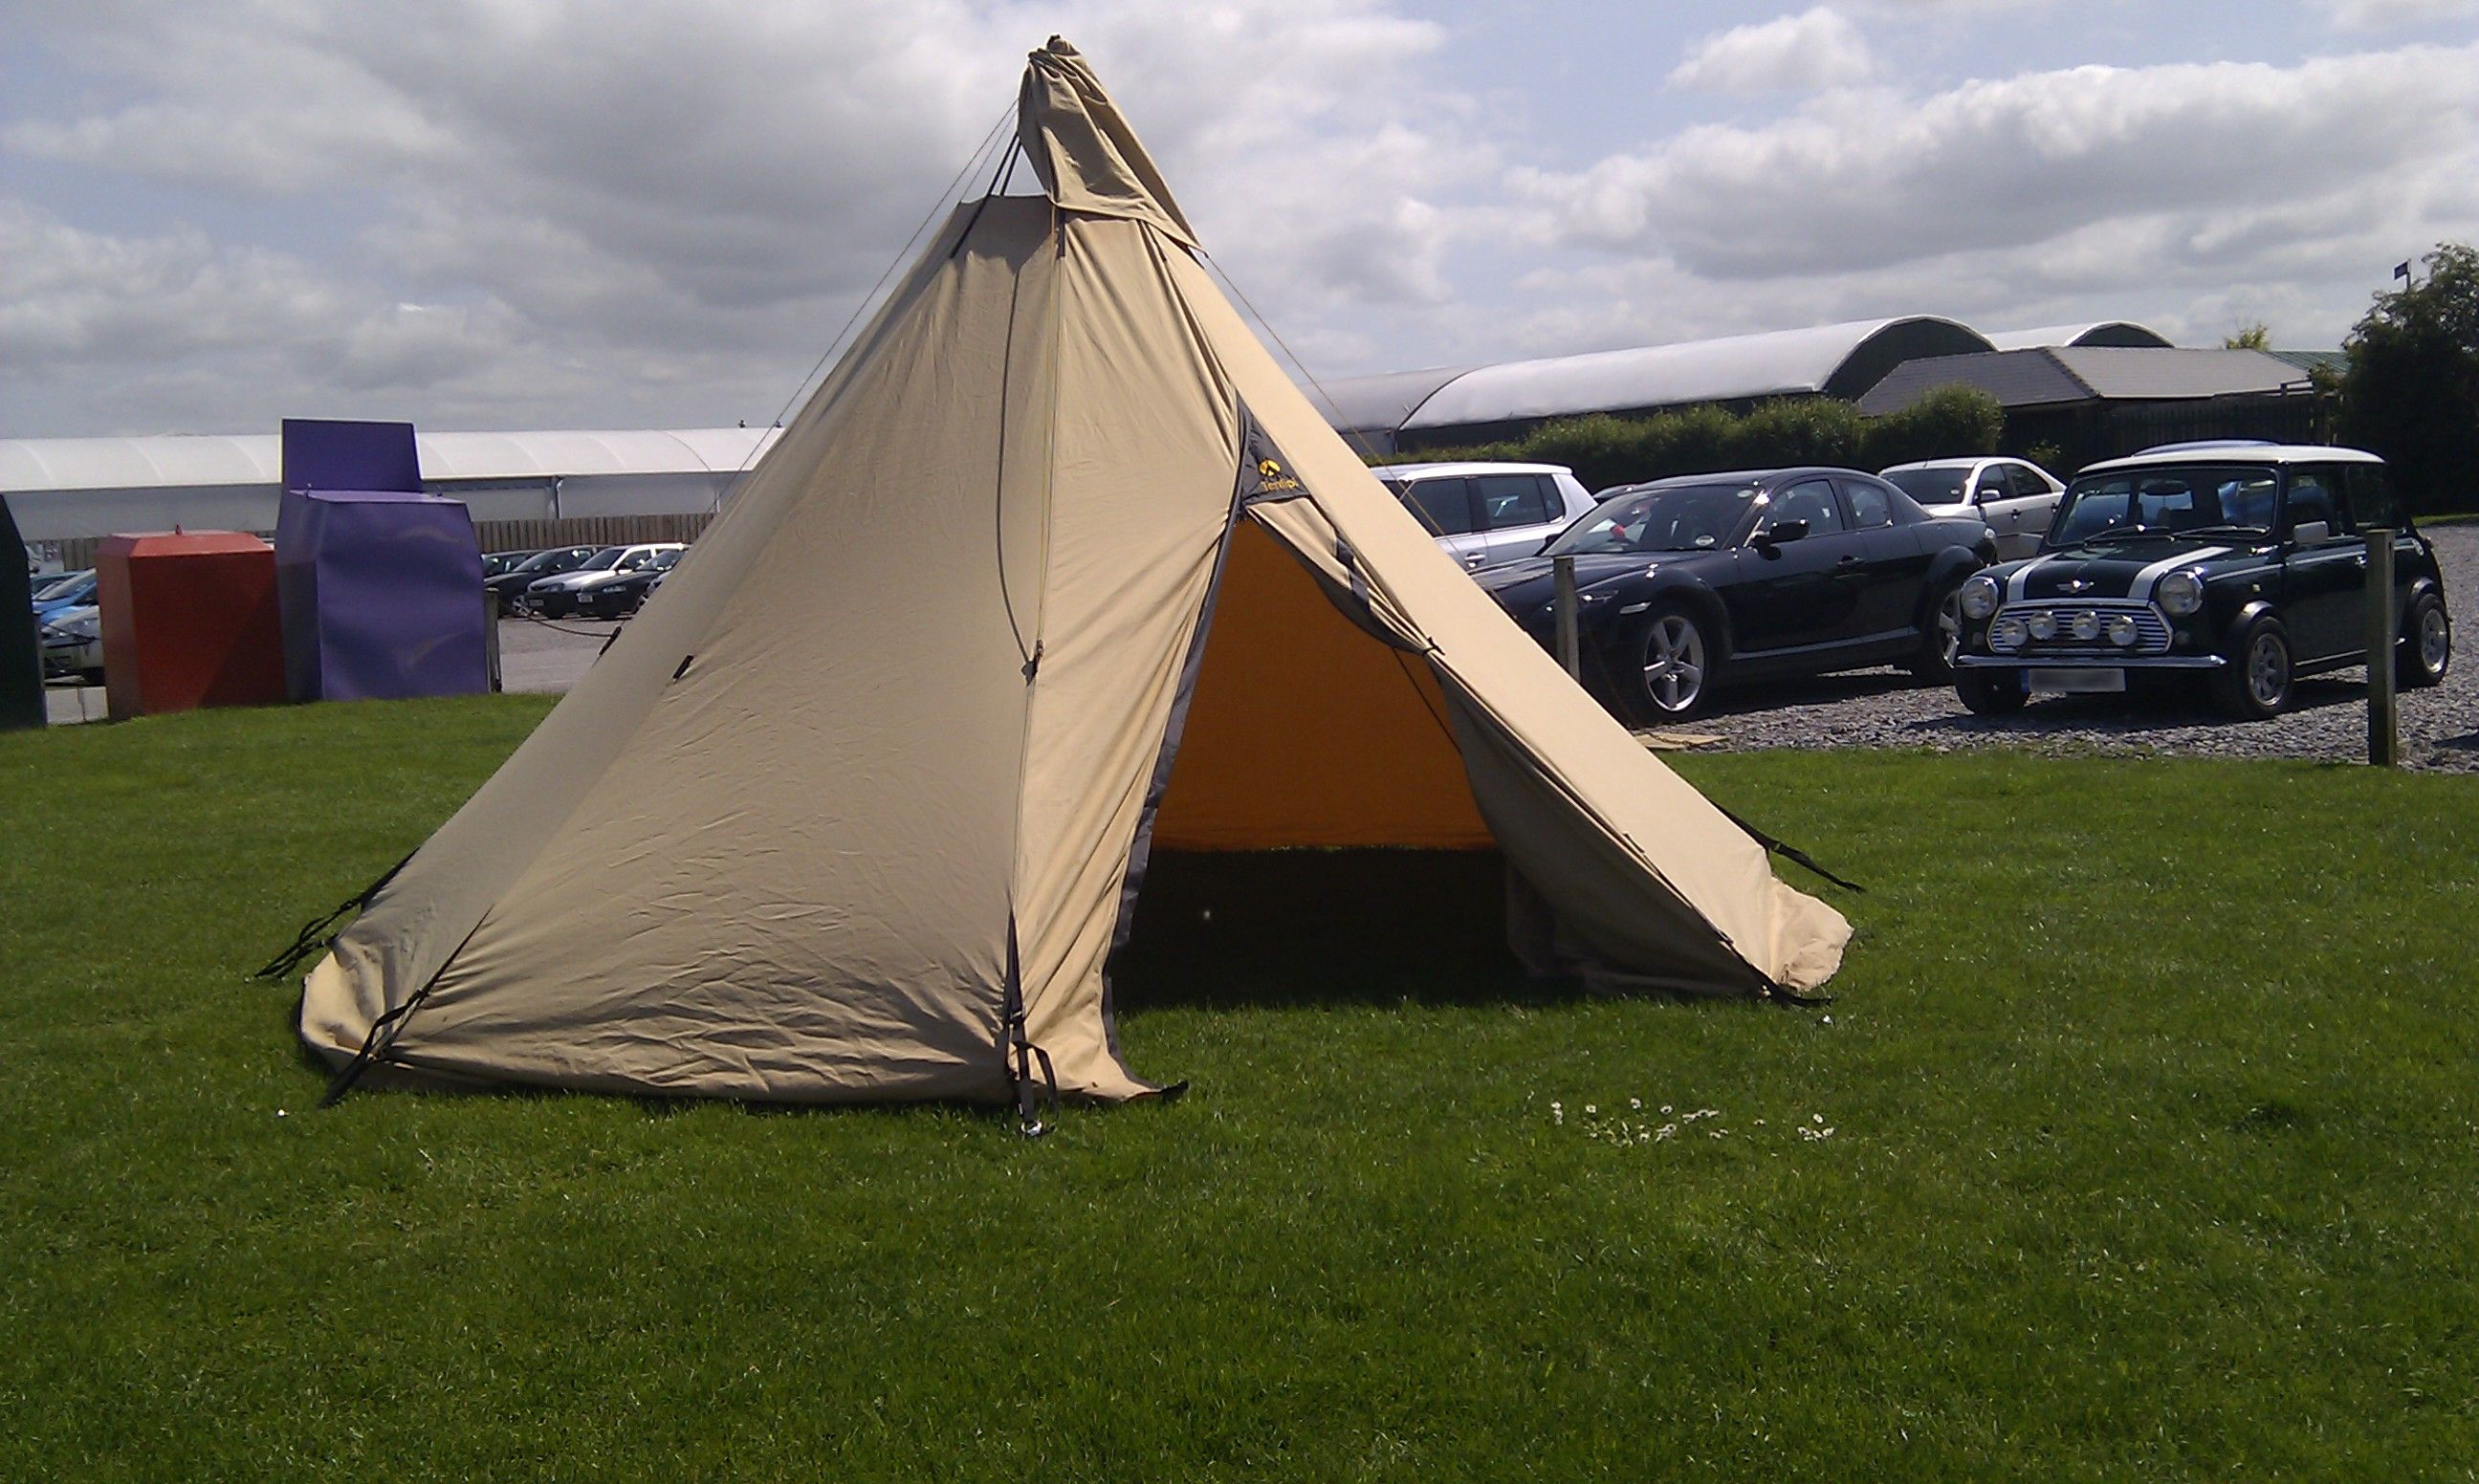 Tentipi Onyx Pitches in 5 minutes. & Tentipi Onyx 5. Pitches in 5 minutes. Really. #camping #tipi #tent ...